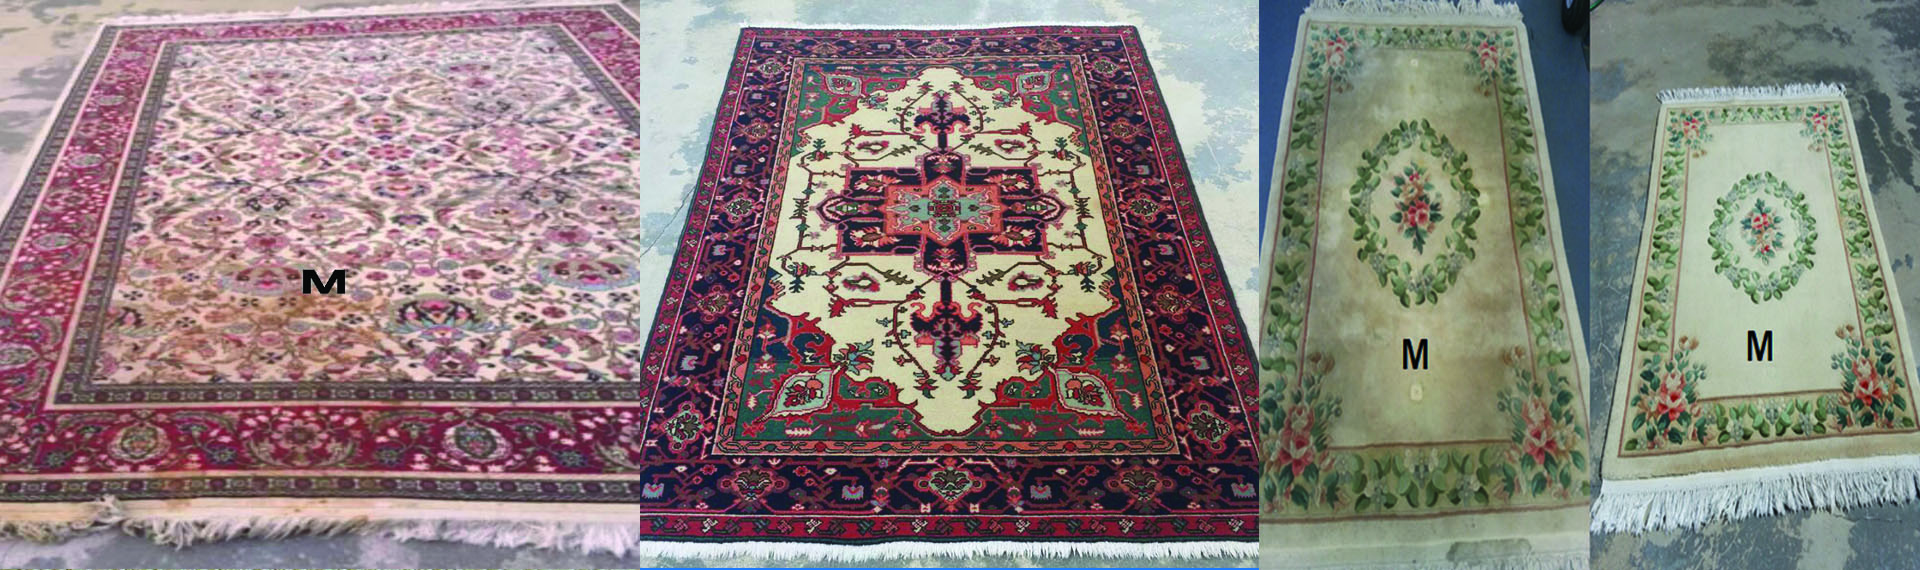 Oriental Rug Hand Cleaning Master & Repair Windermere FL